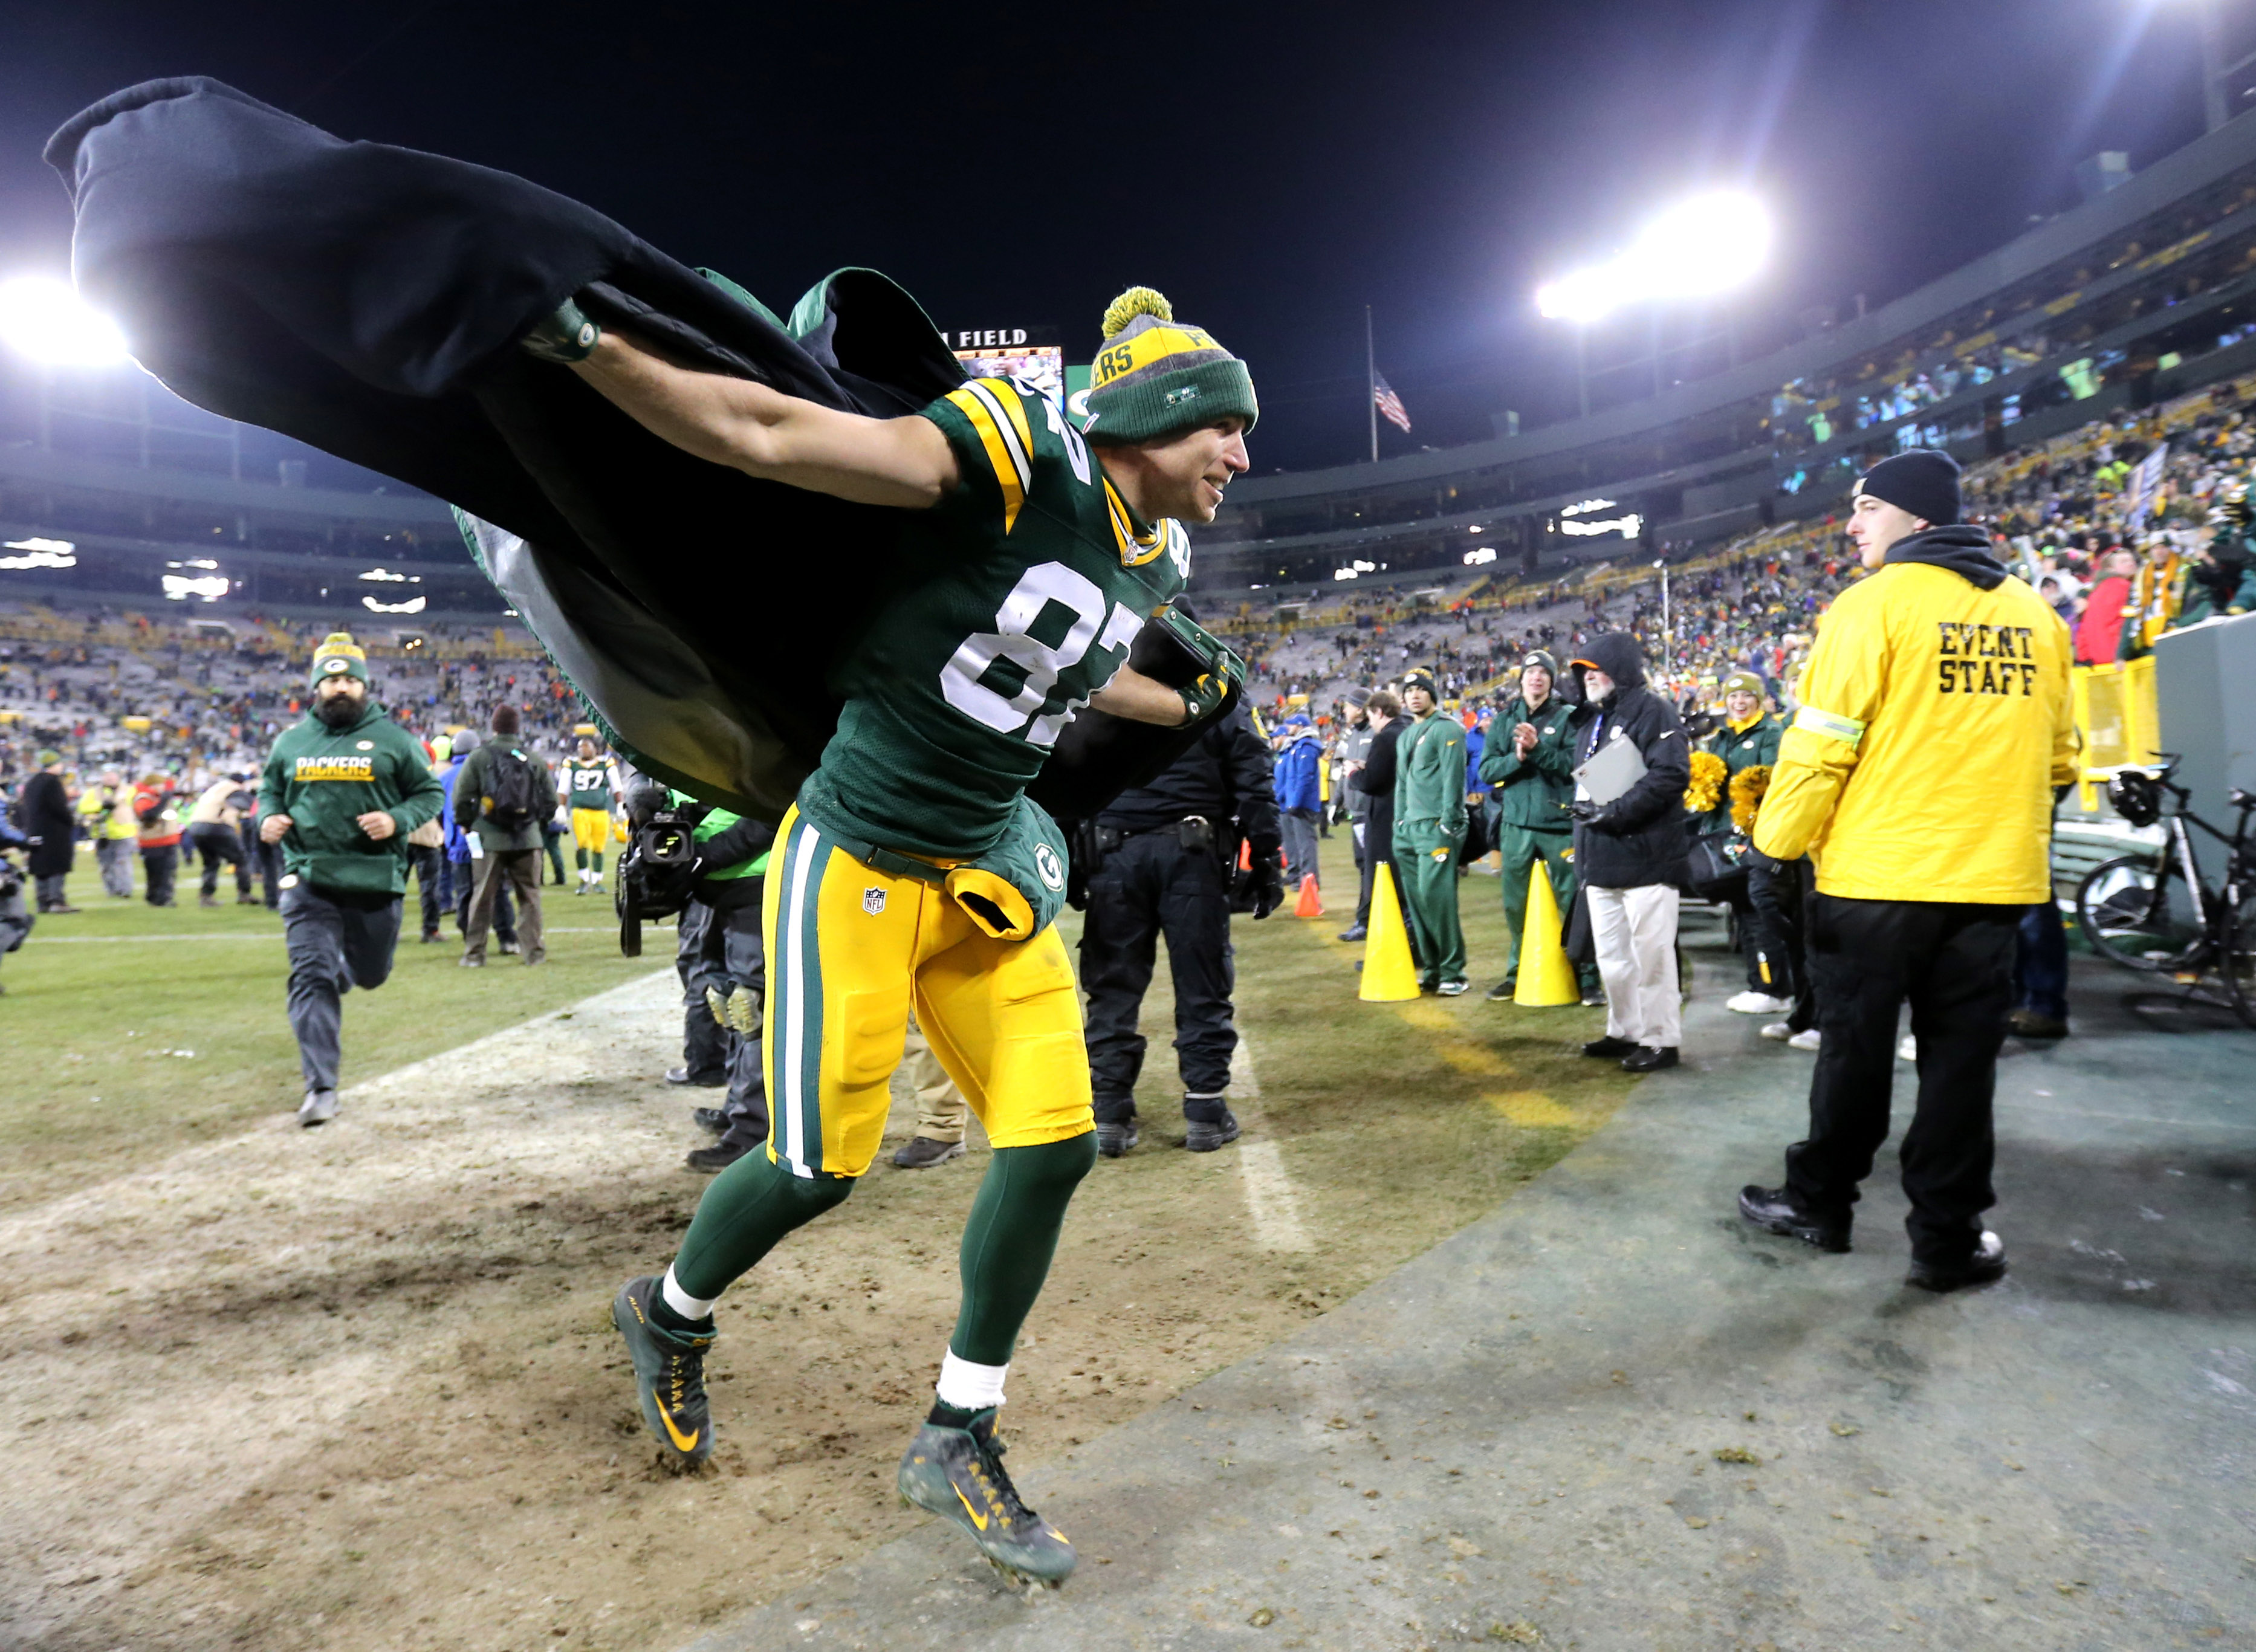 9742755-nfl-seattle-seahawks-at-green-bay-packers